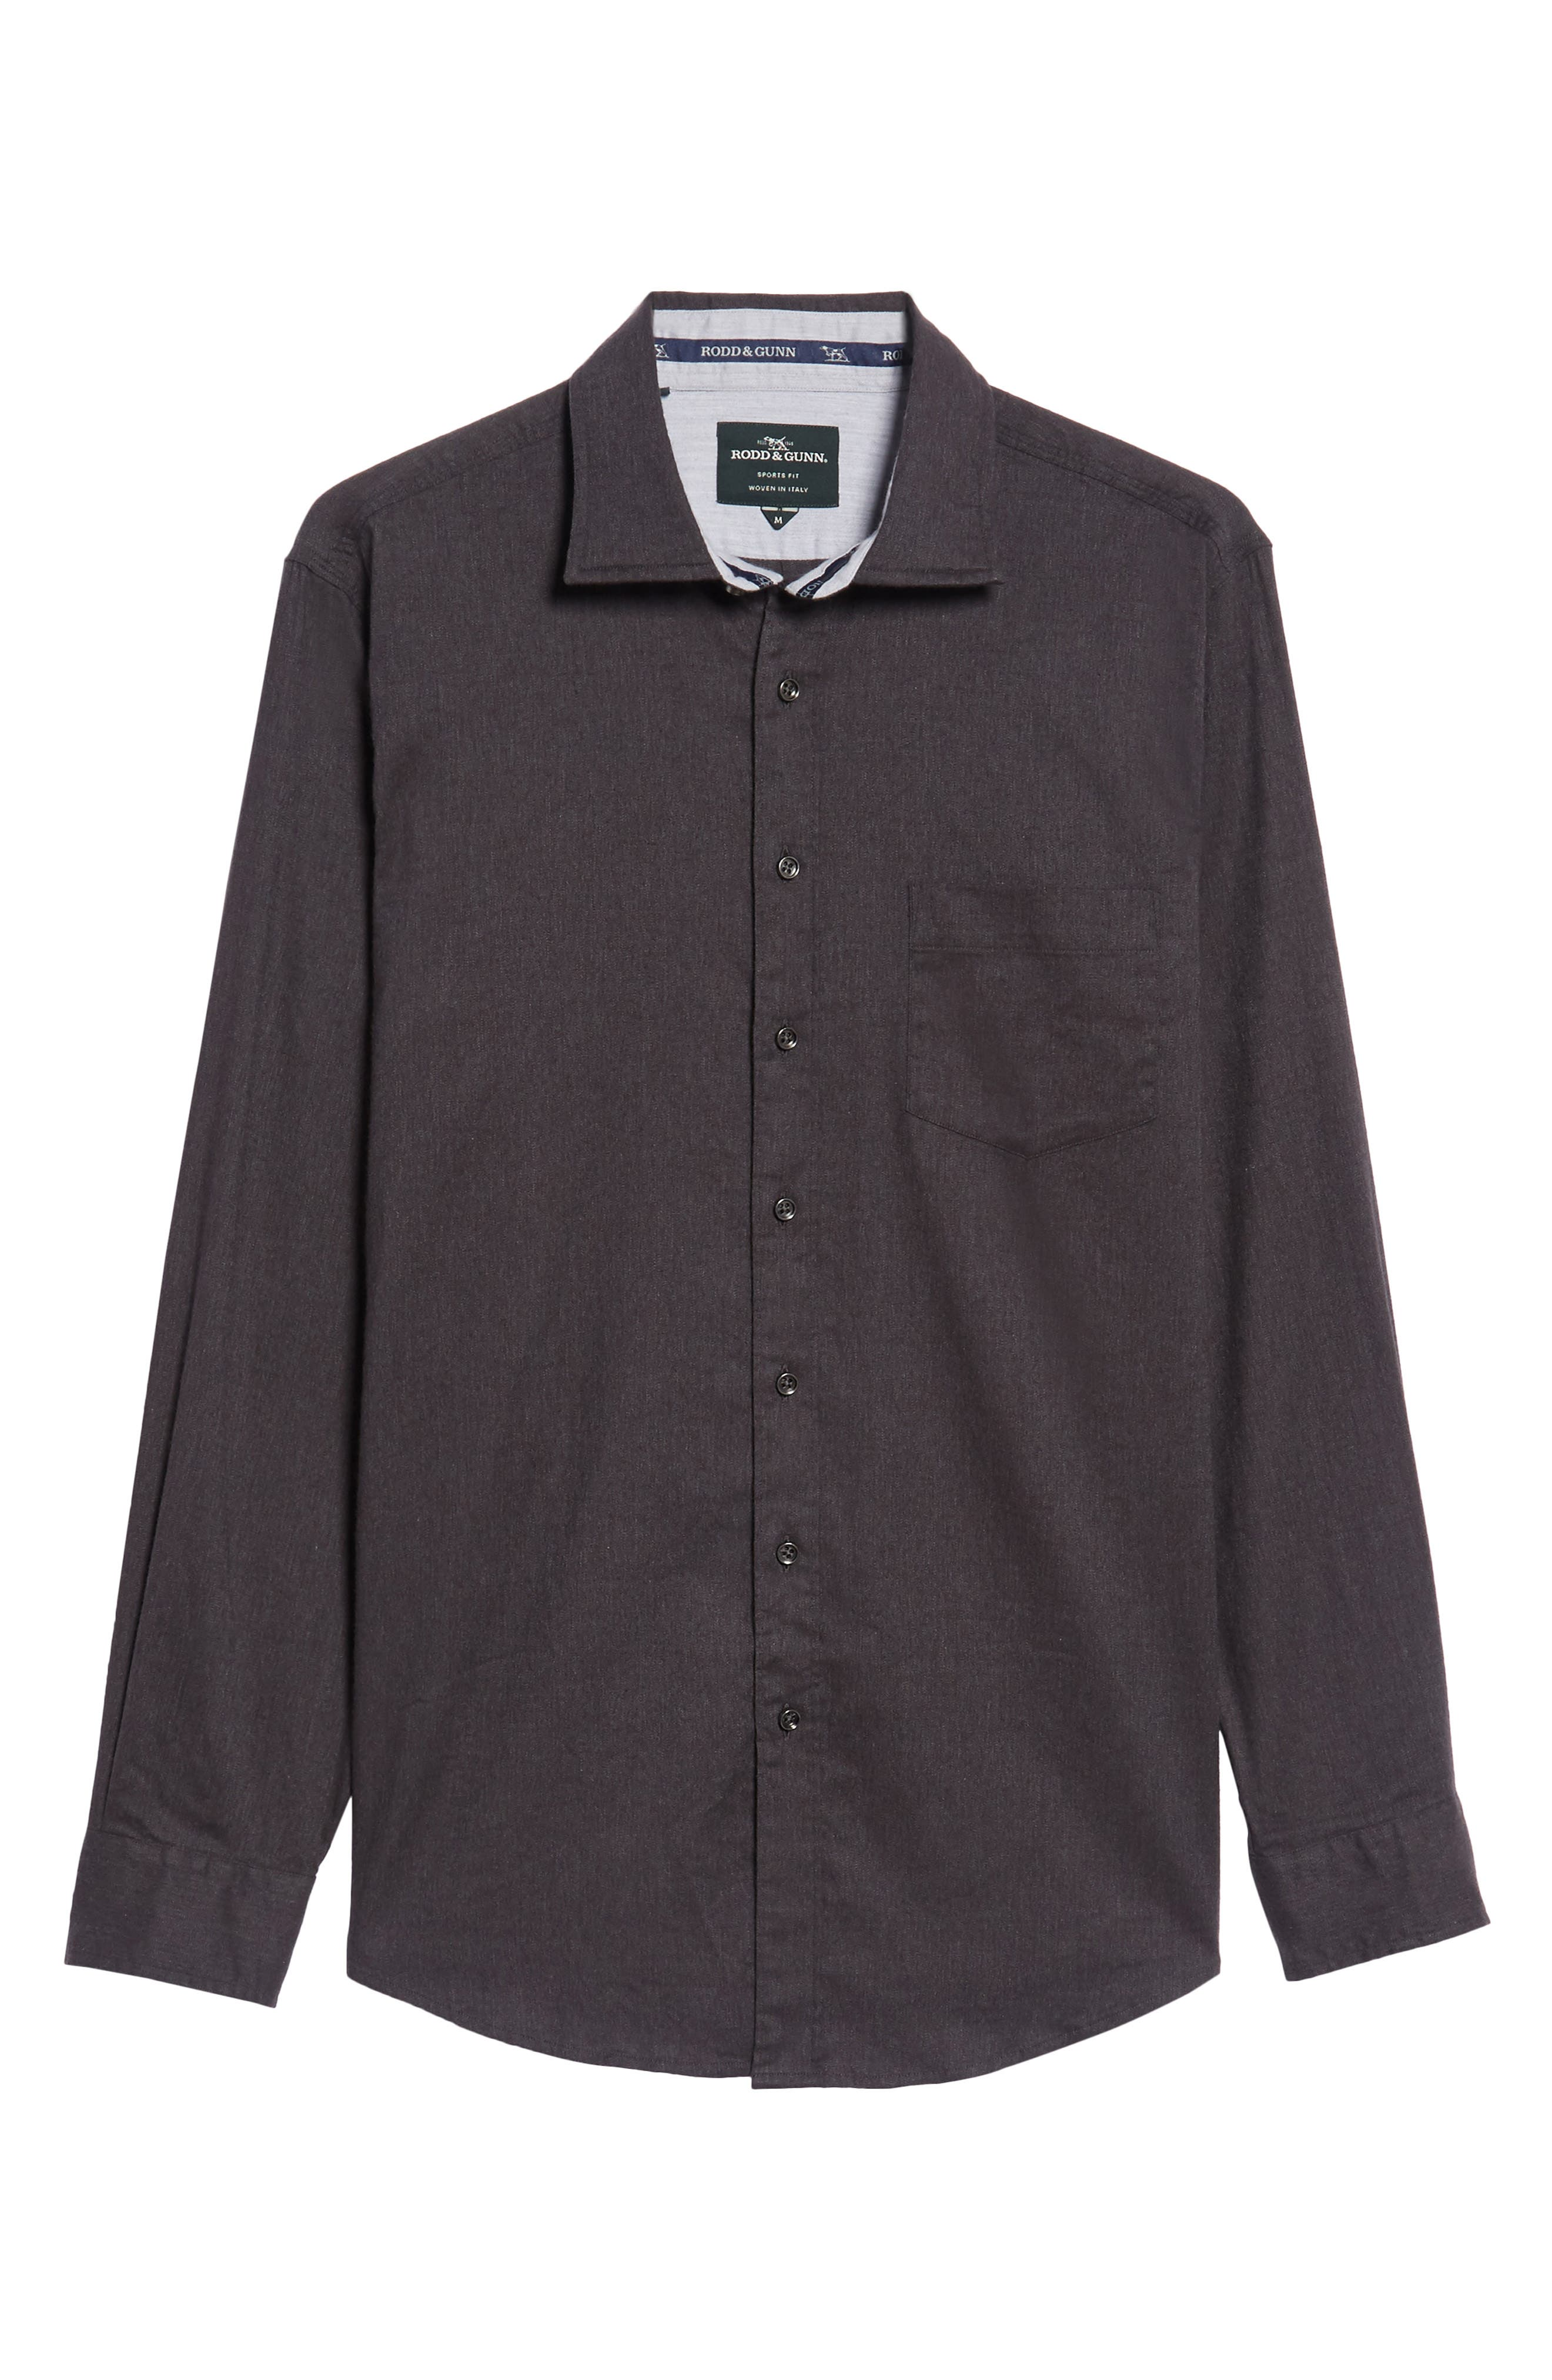 'Sinclair' Trim Fit Brushed Twill Sport Shirt,                             Alternate thumbnail 6, color,                             021